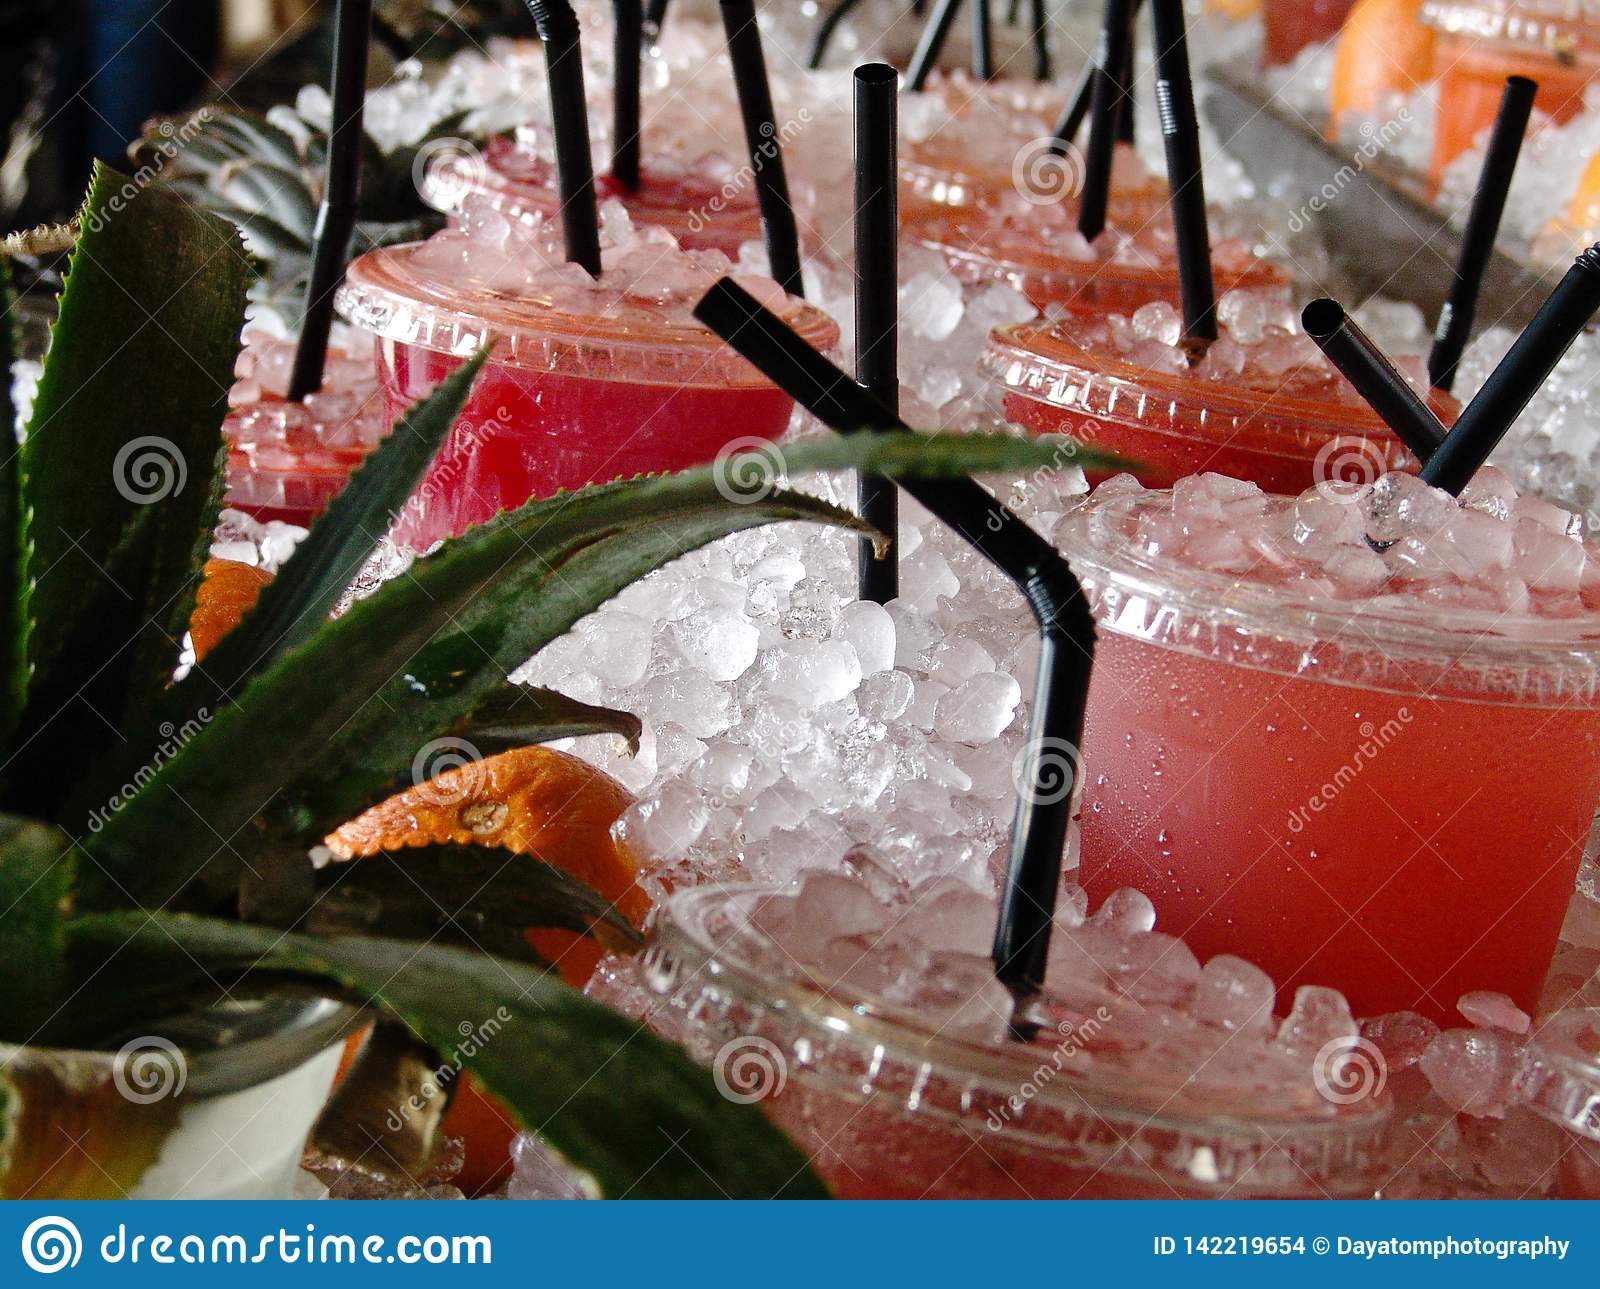 Fresh fruity cold drinks, displayed at a table full of ice, aloe verra plants and fruit